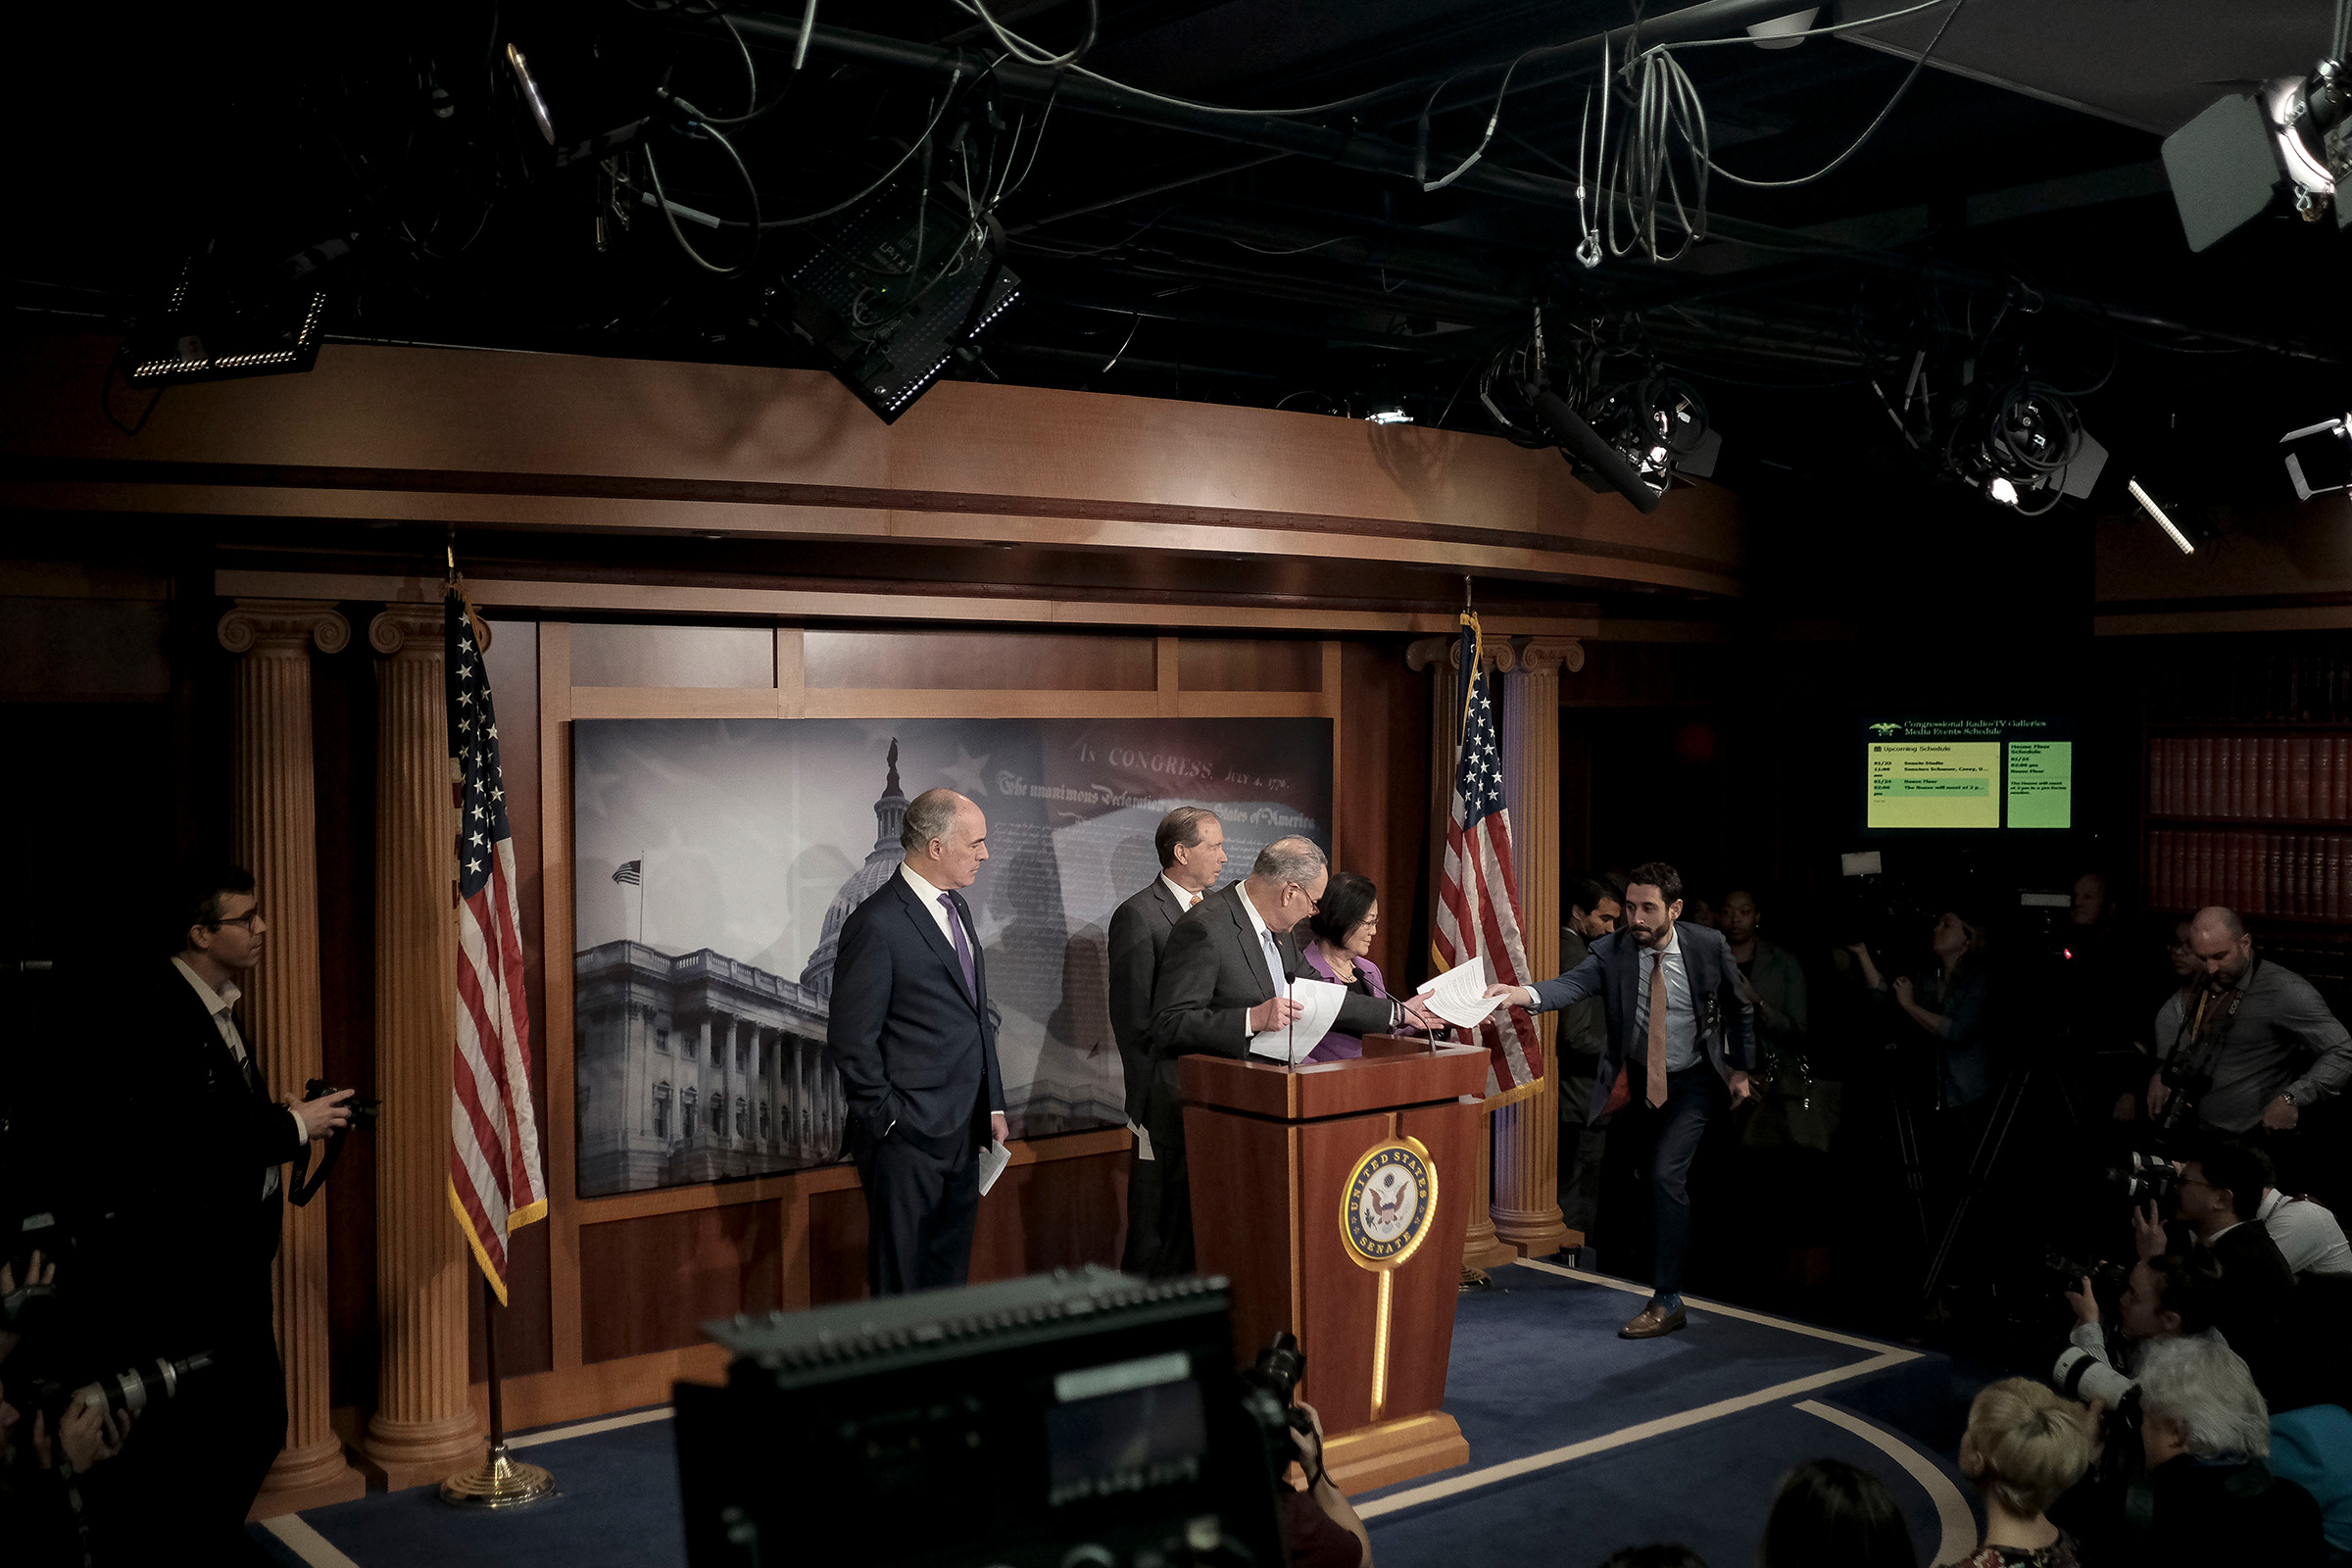 Senate Minority Leader Chuck Schumer (D-N.Y.) along with other senate democratic leaders speak to reporters at a press conference before the senate impeachment trial at the Capitol in Washington, D.C. on Jan. 23, 2020.